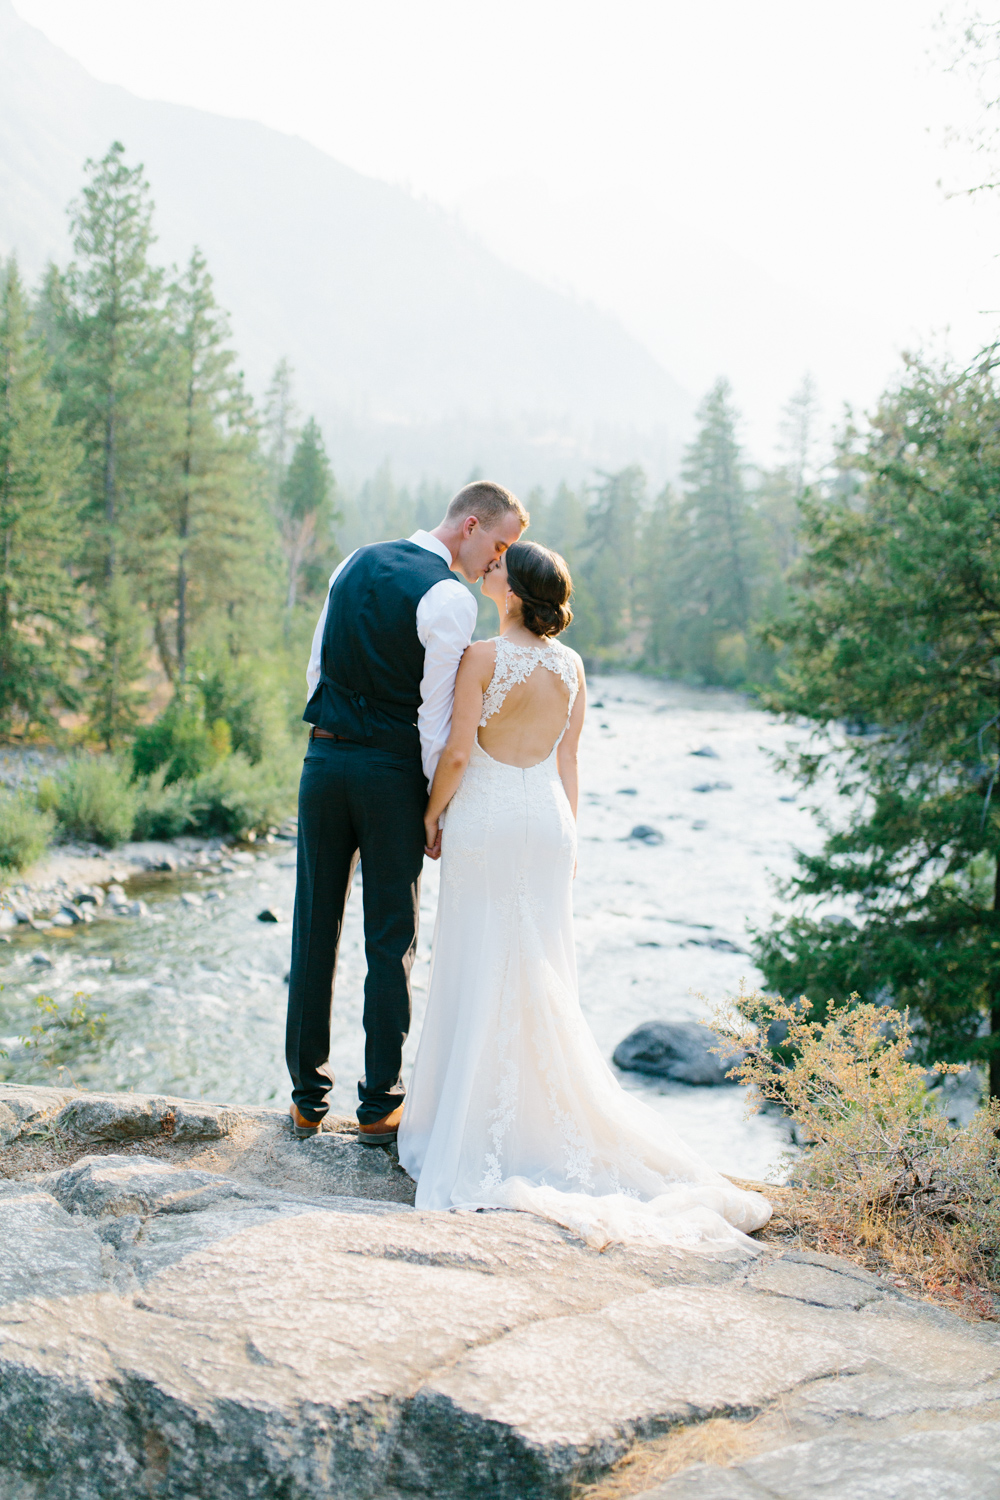 Grey and White Wedding in the Mountains of Leavenworth, Washington | Sleeping Lady | Classic and Timeless Wedding | VSCO | Stunning Mountain Top Bride and Groom Portraits on the Icicle River.jpg-1393.jpg